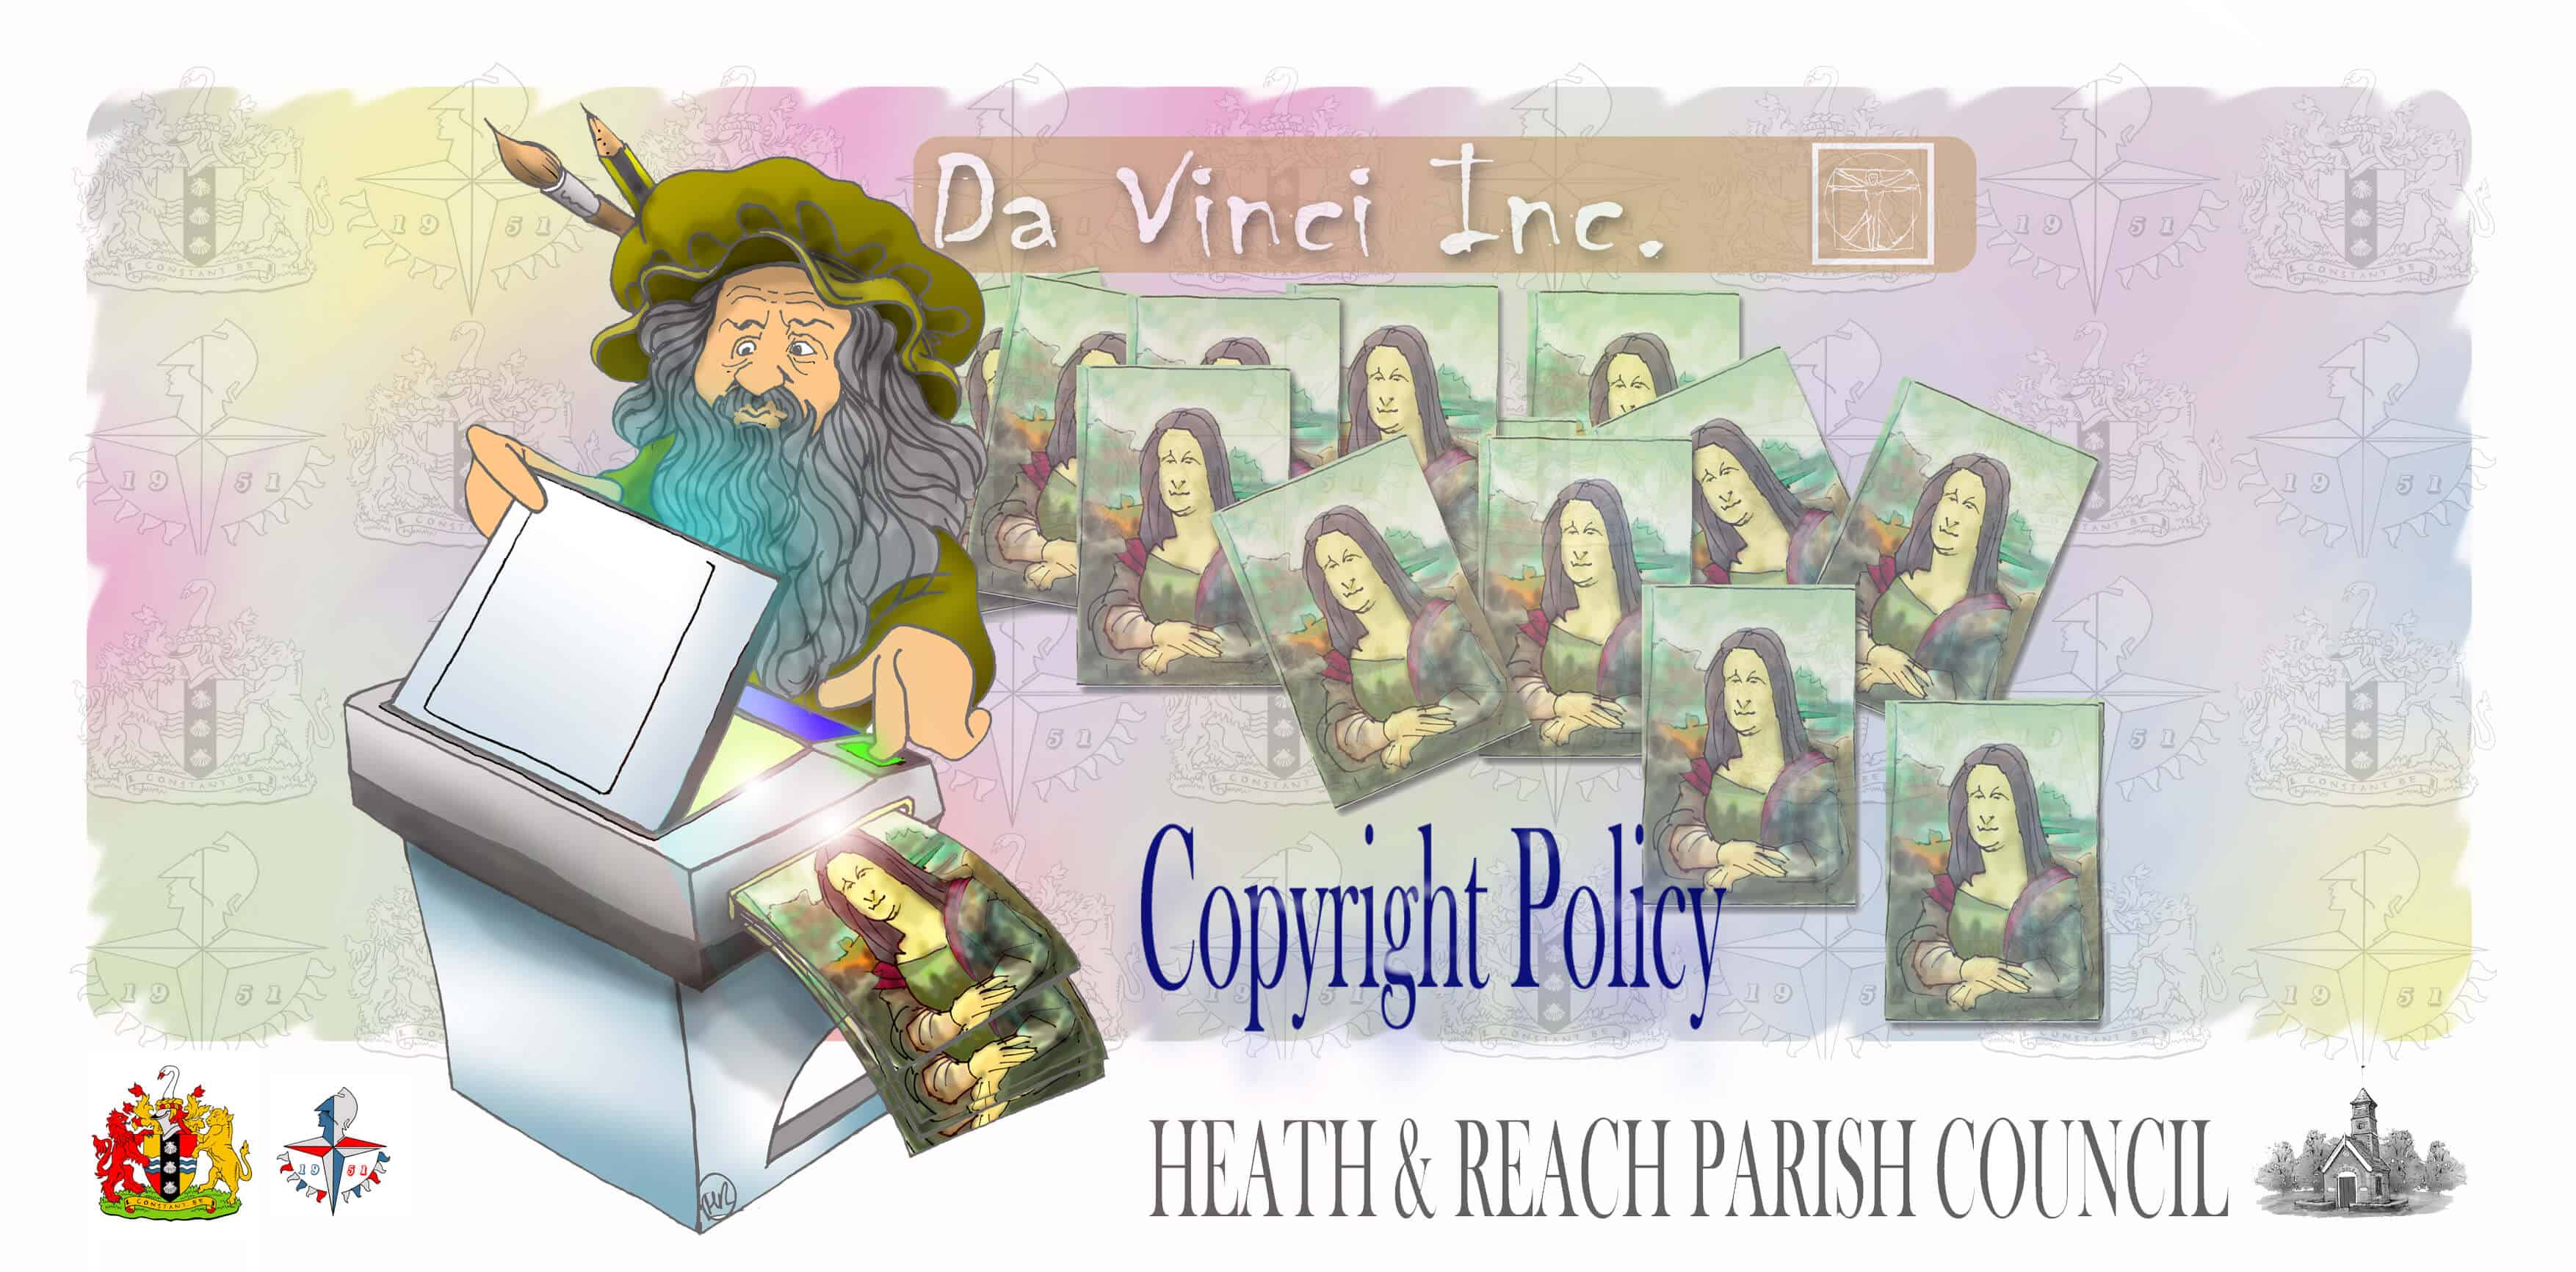 Copyright Policy - Heath and Reach Parish Council. Image by Martin Richardson of Graphite HB